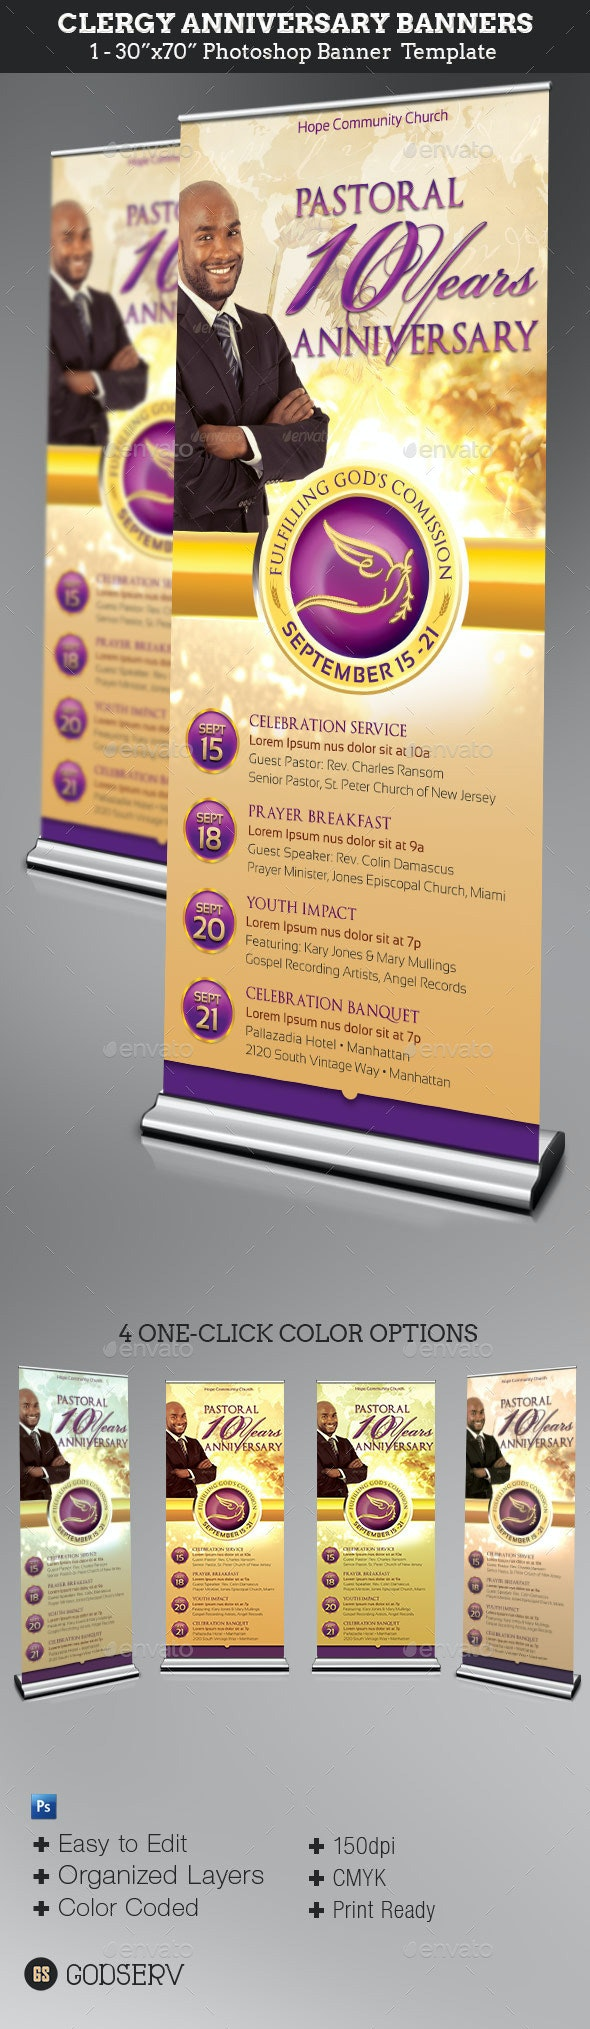 Clergy Anniversary Banner Template - Signage Print Templates